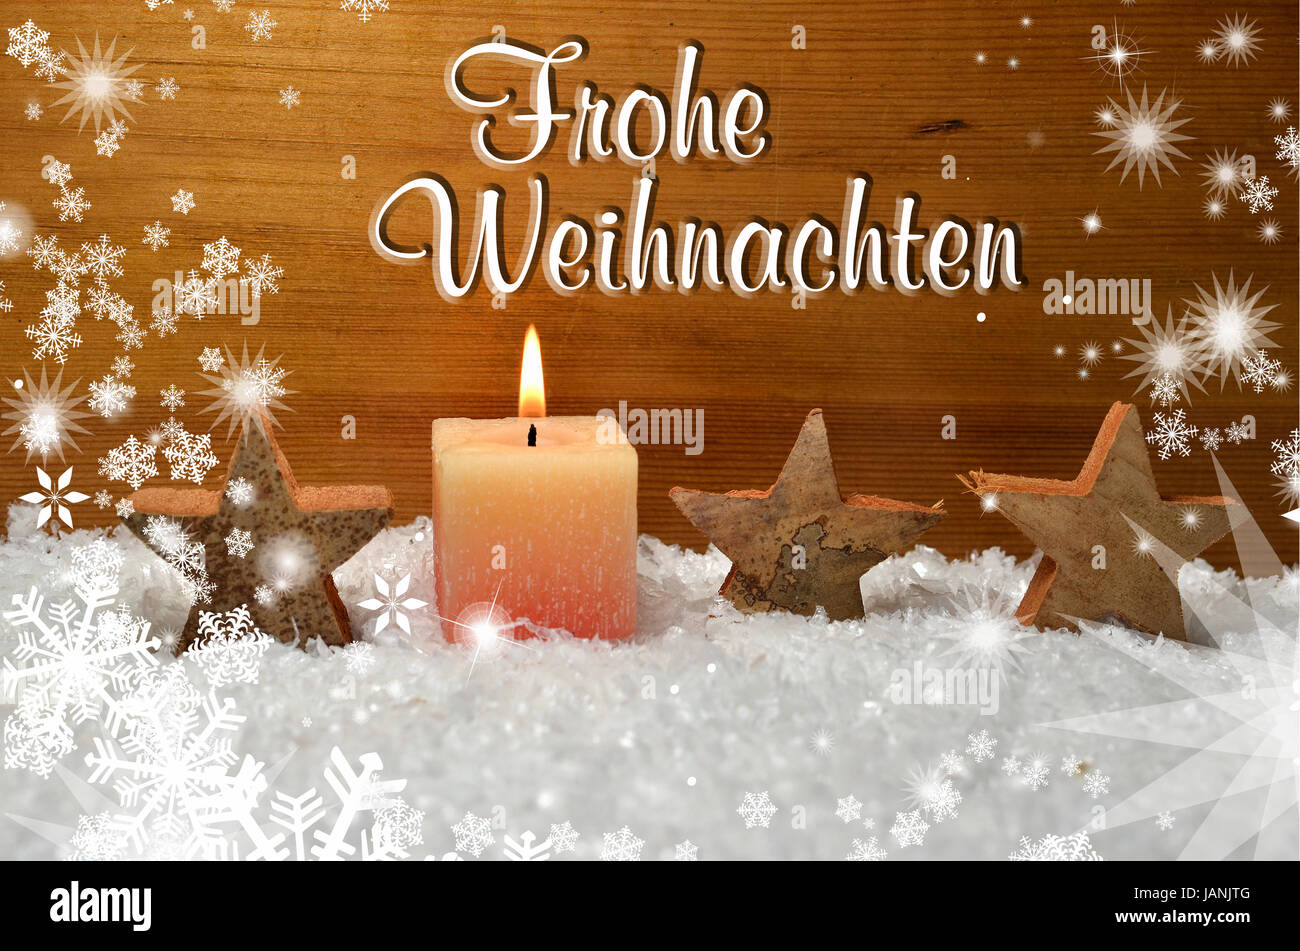 Frohe weihnachten dekoration advent stock photo royalty for Dekoration advent weihnachten